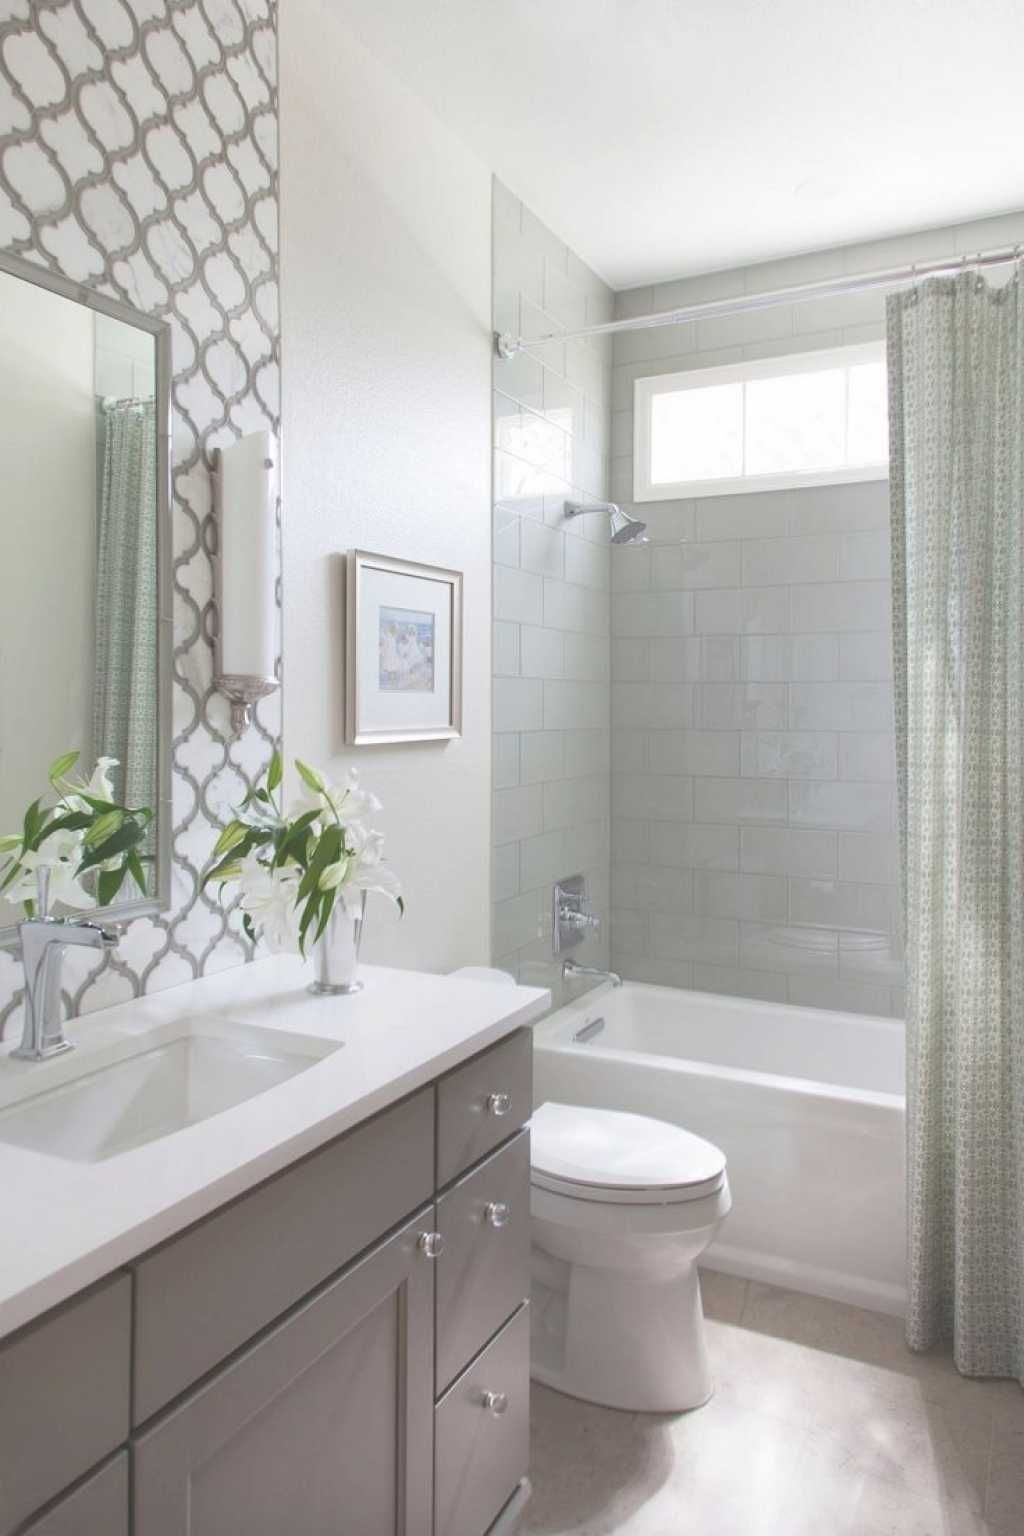 Remodel your small bathroom fast and inexpensively bathroom remodel small small bathroom tub ideas